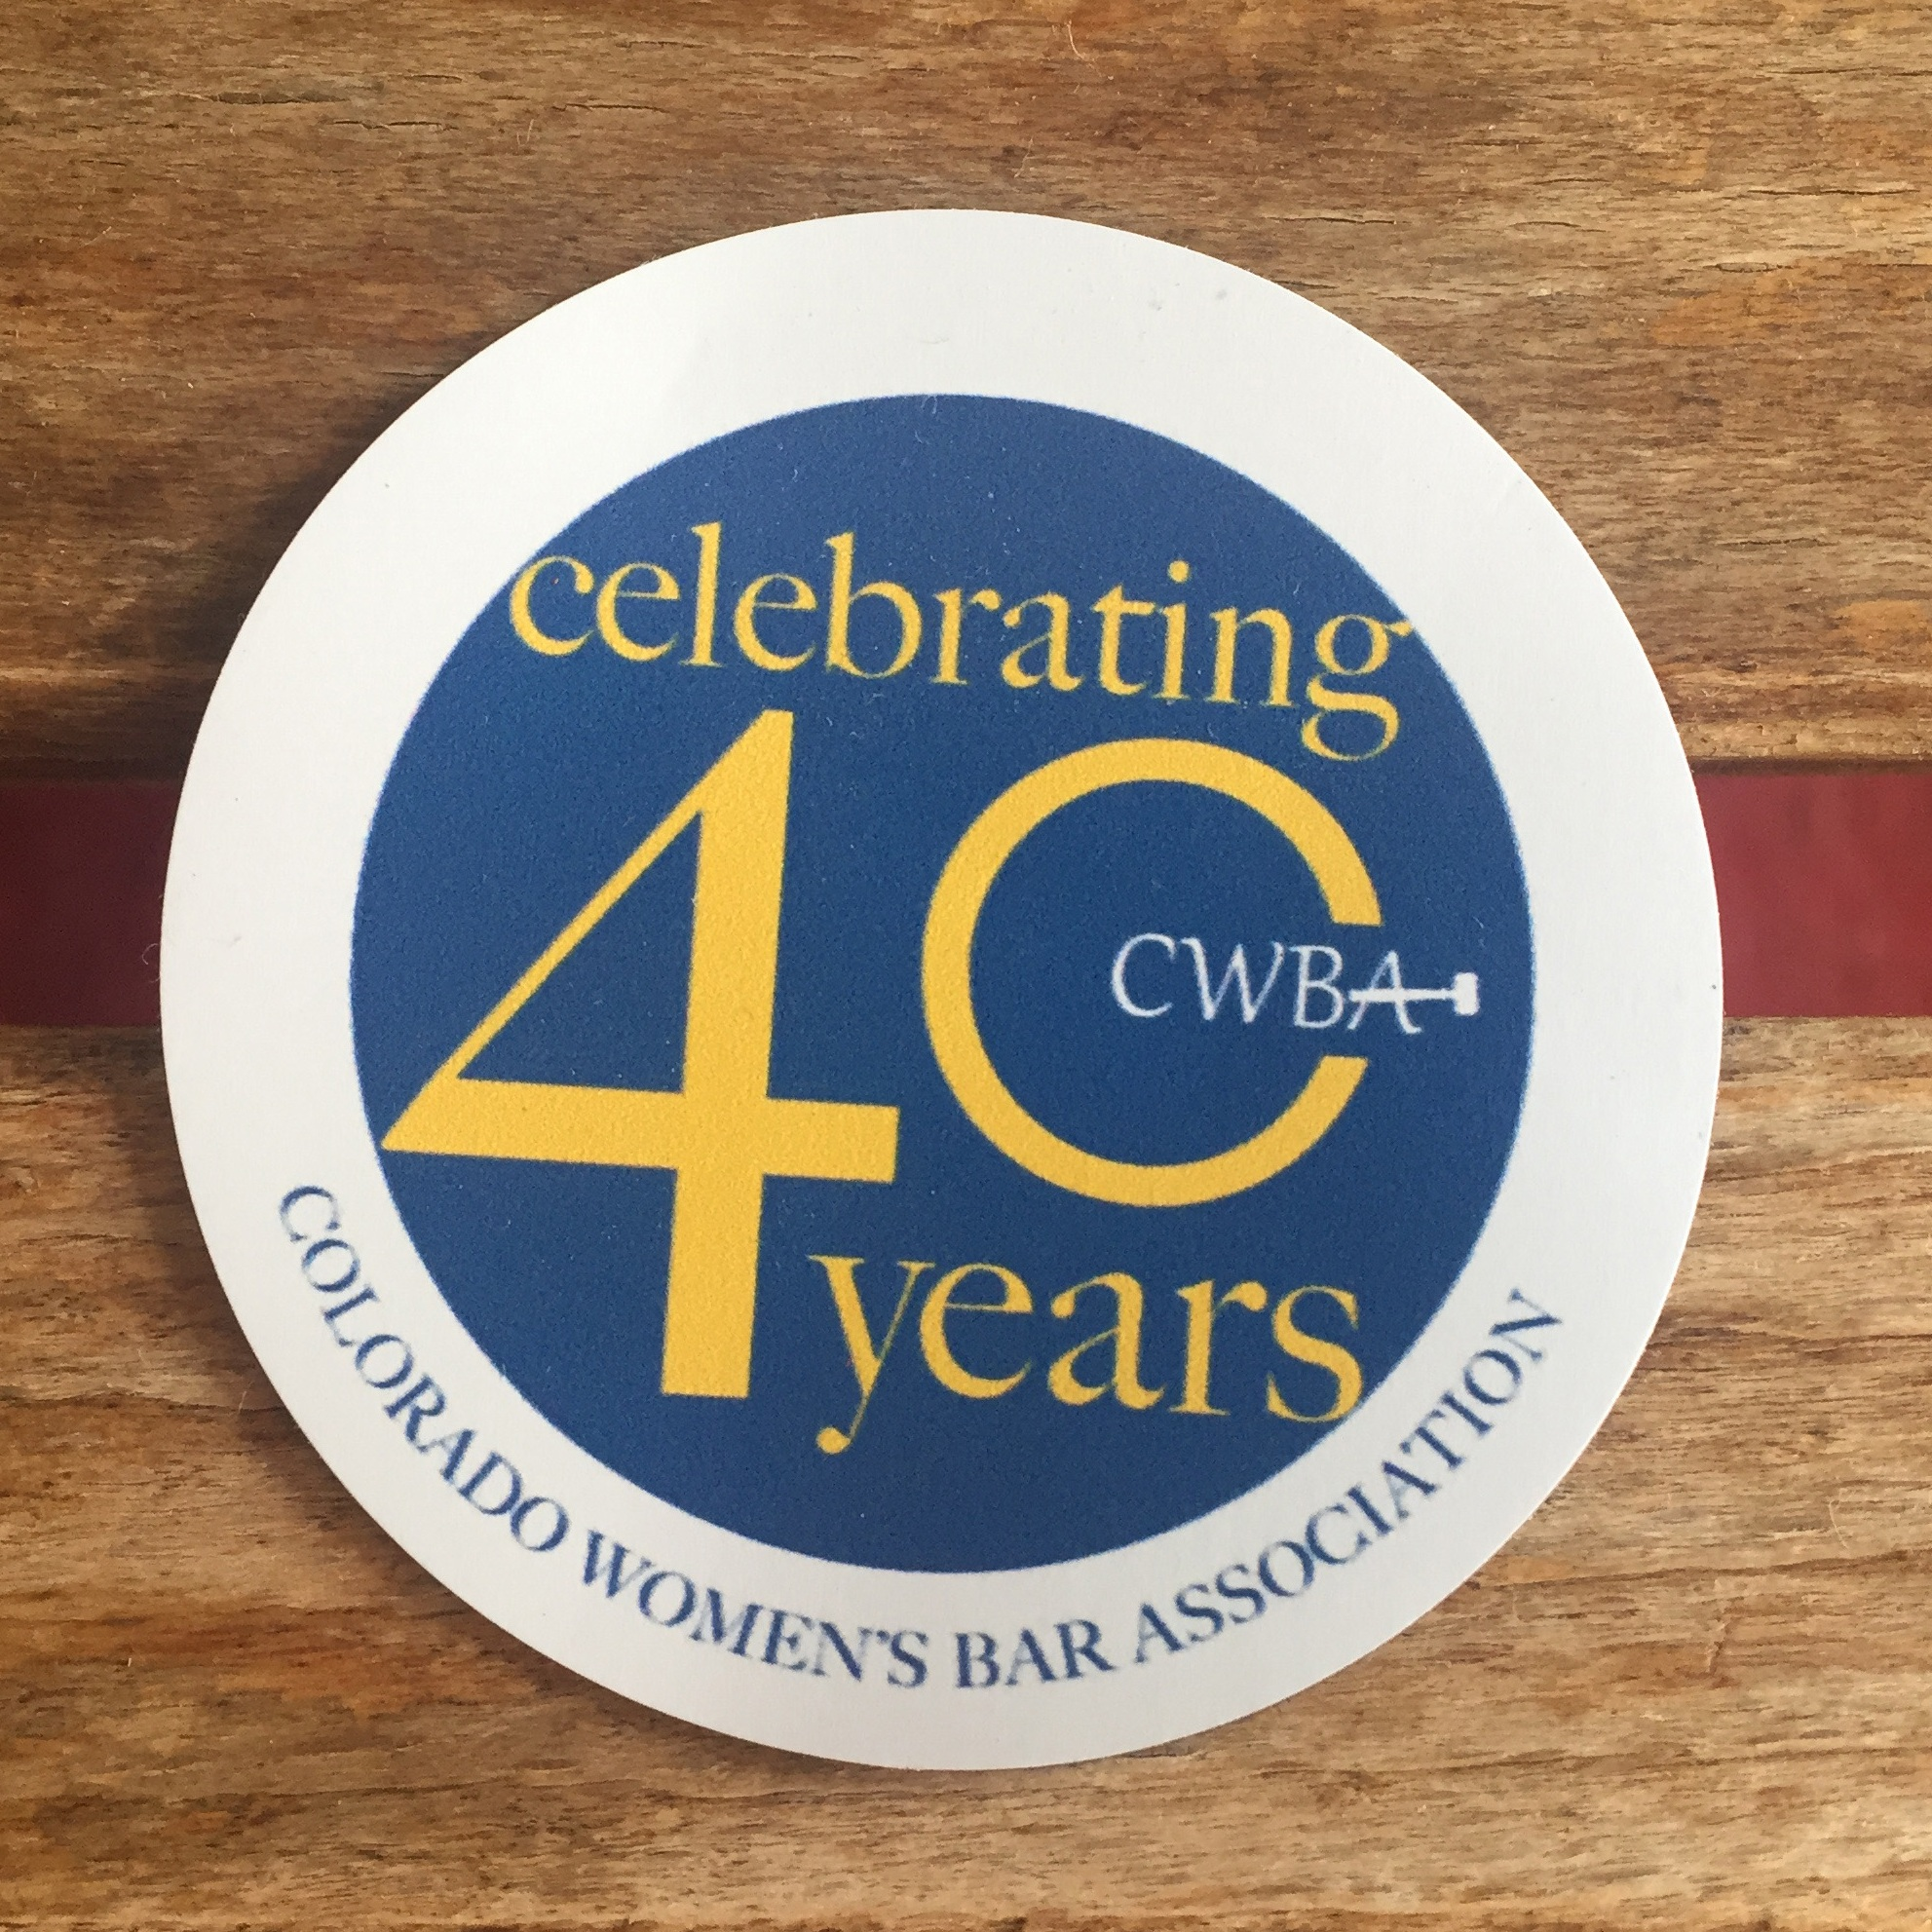 CWBA 40th Year logo